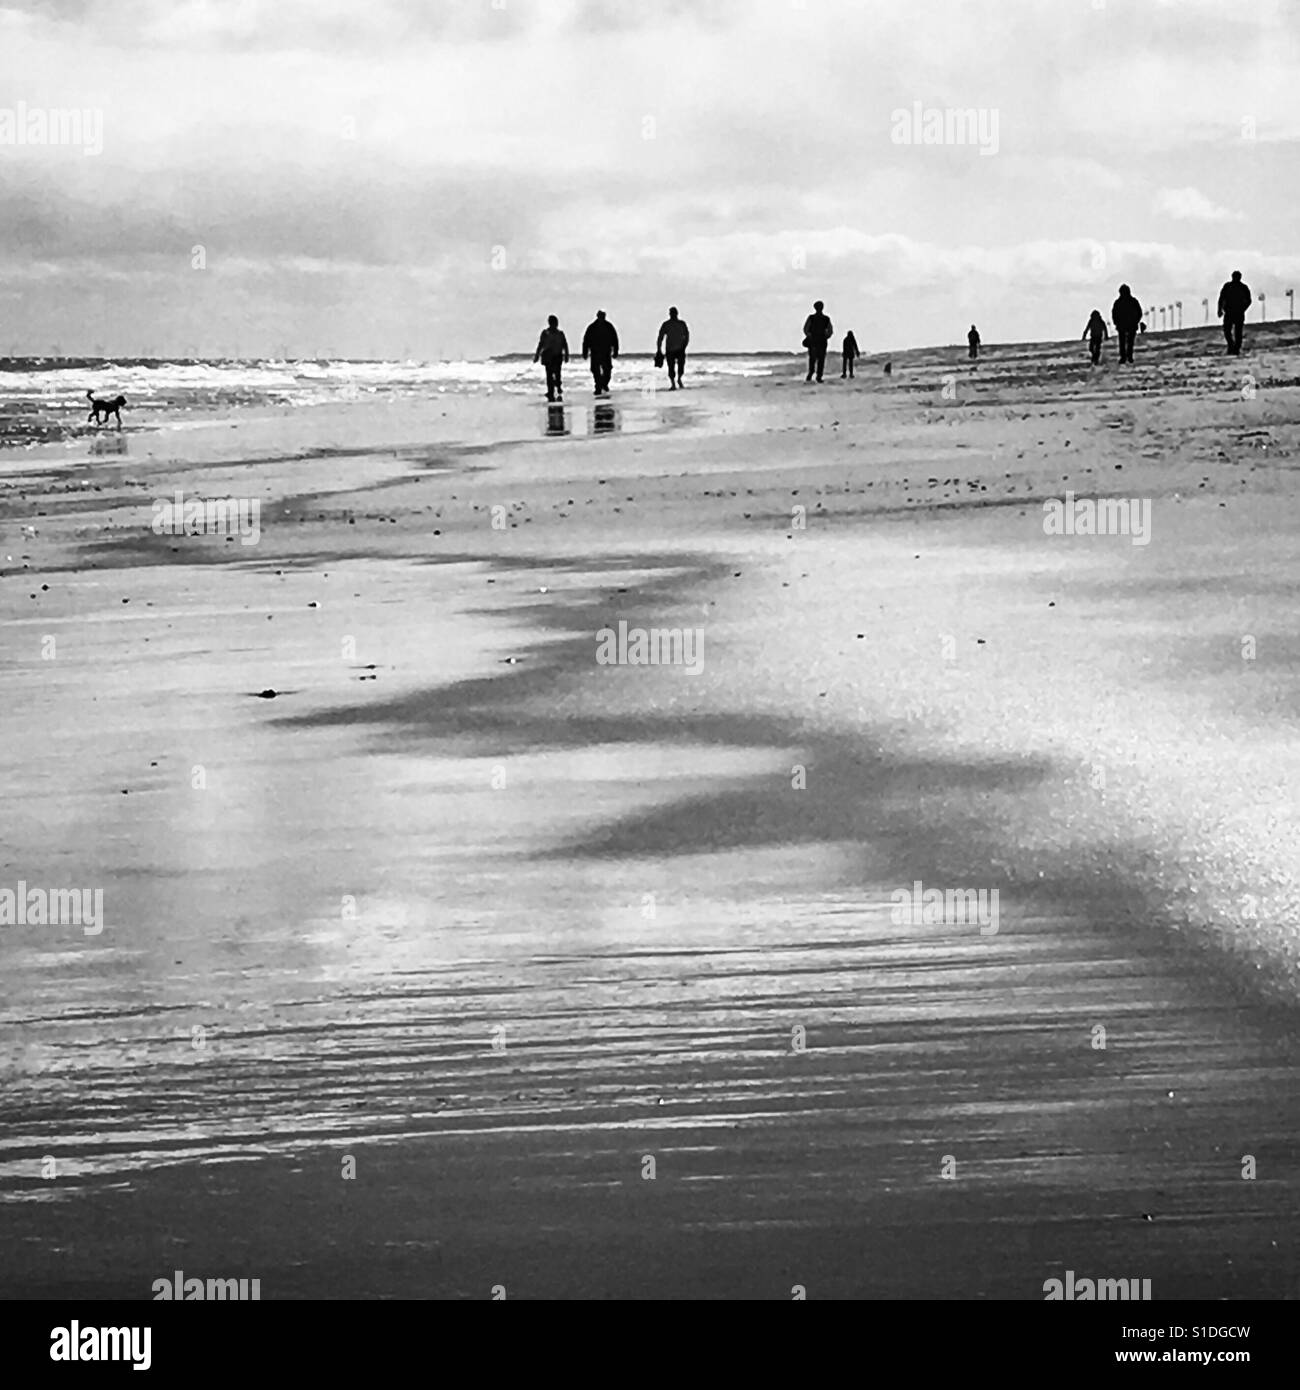 People walking along the beach. - Stock Image